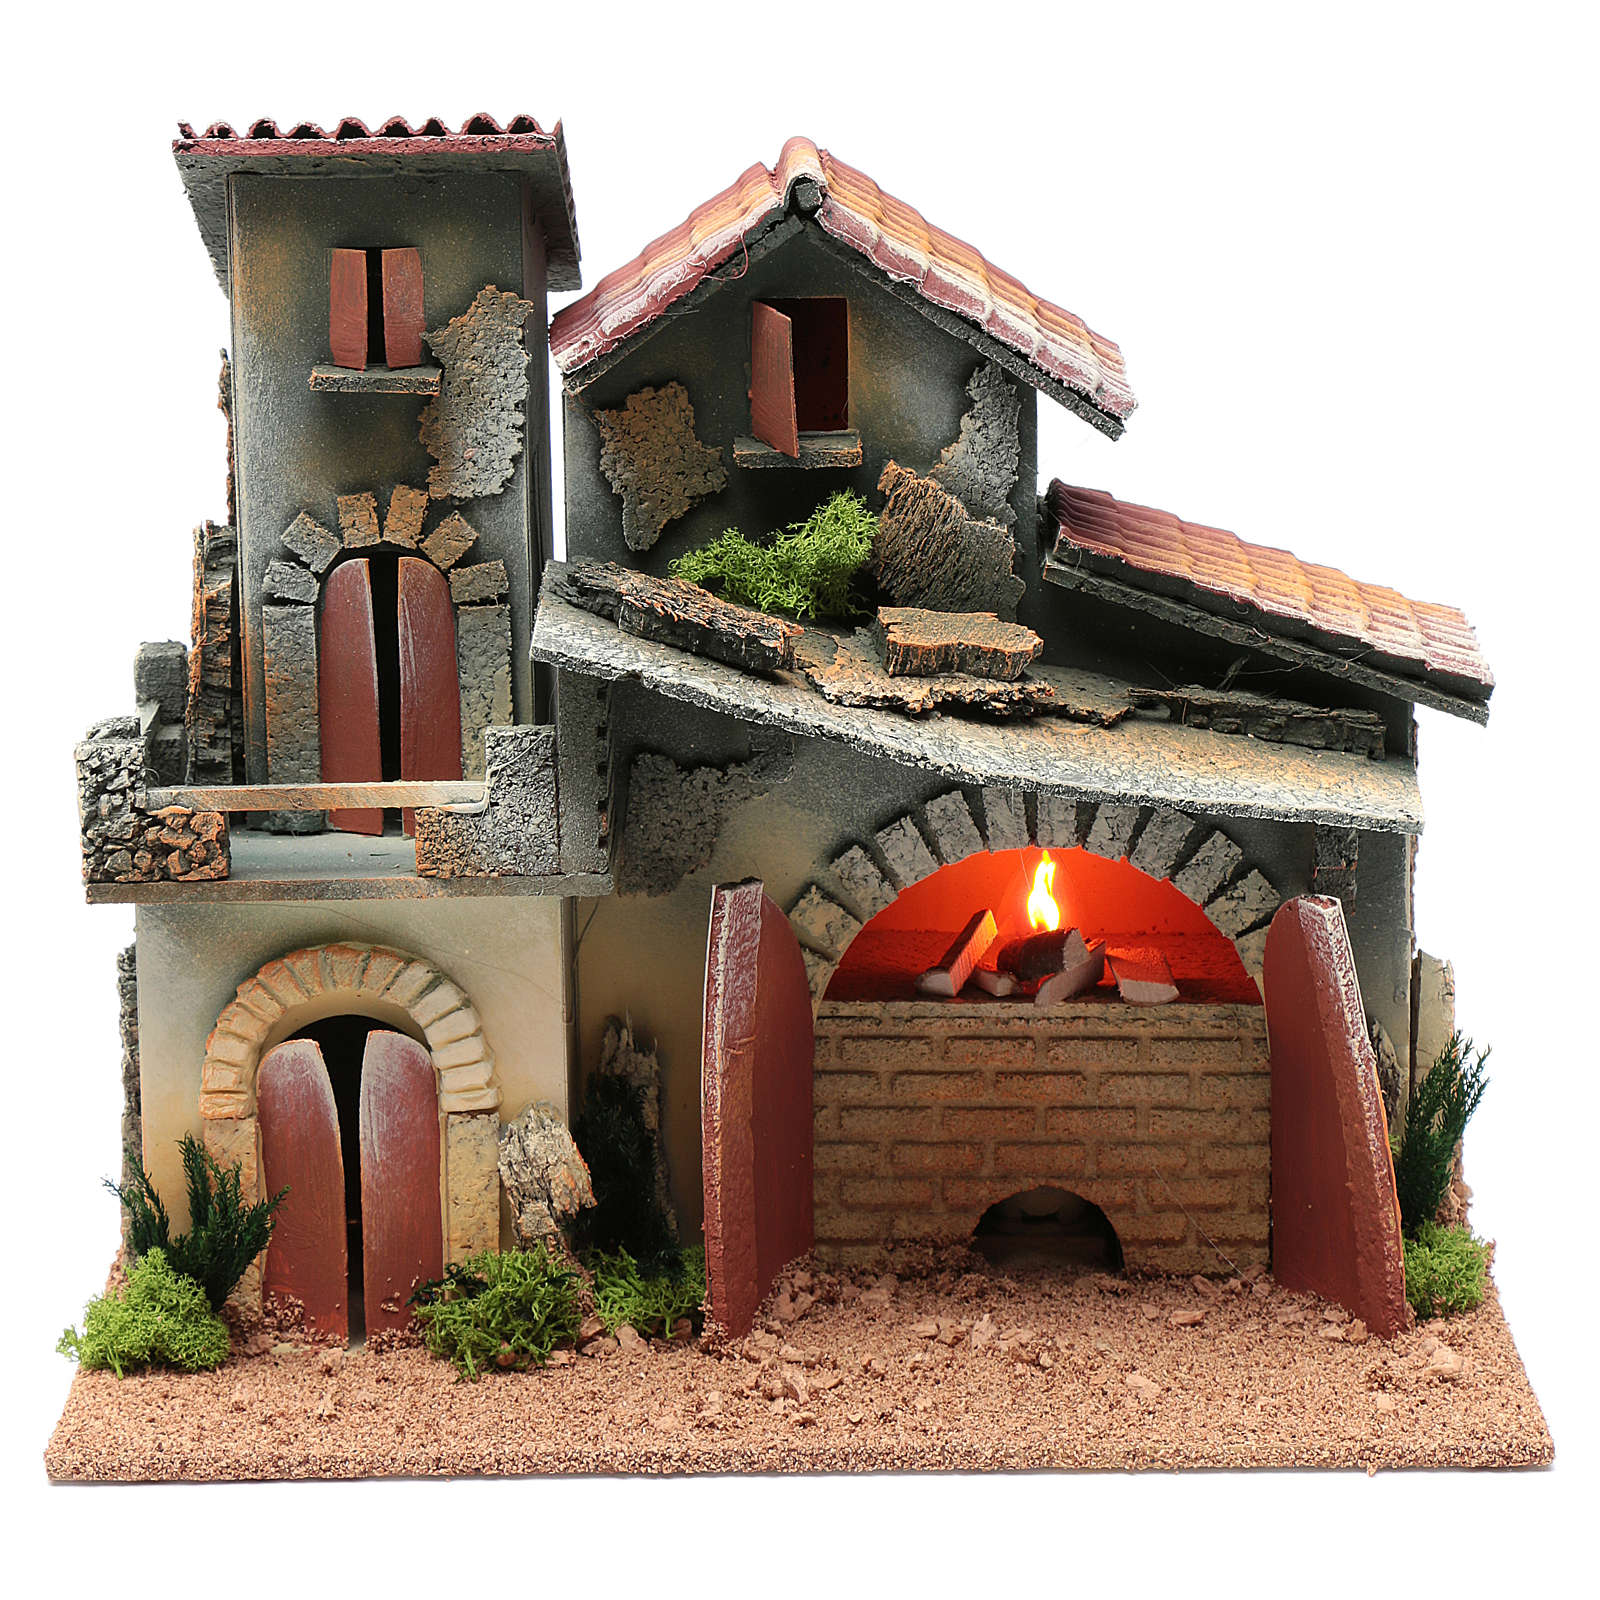 Nativity scene setting with fireplace and light  25x30x20 cm 4